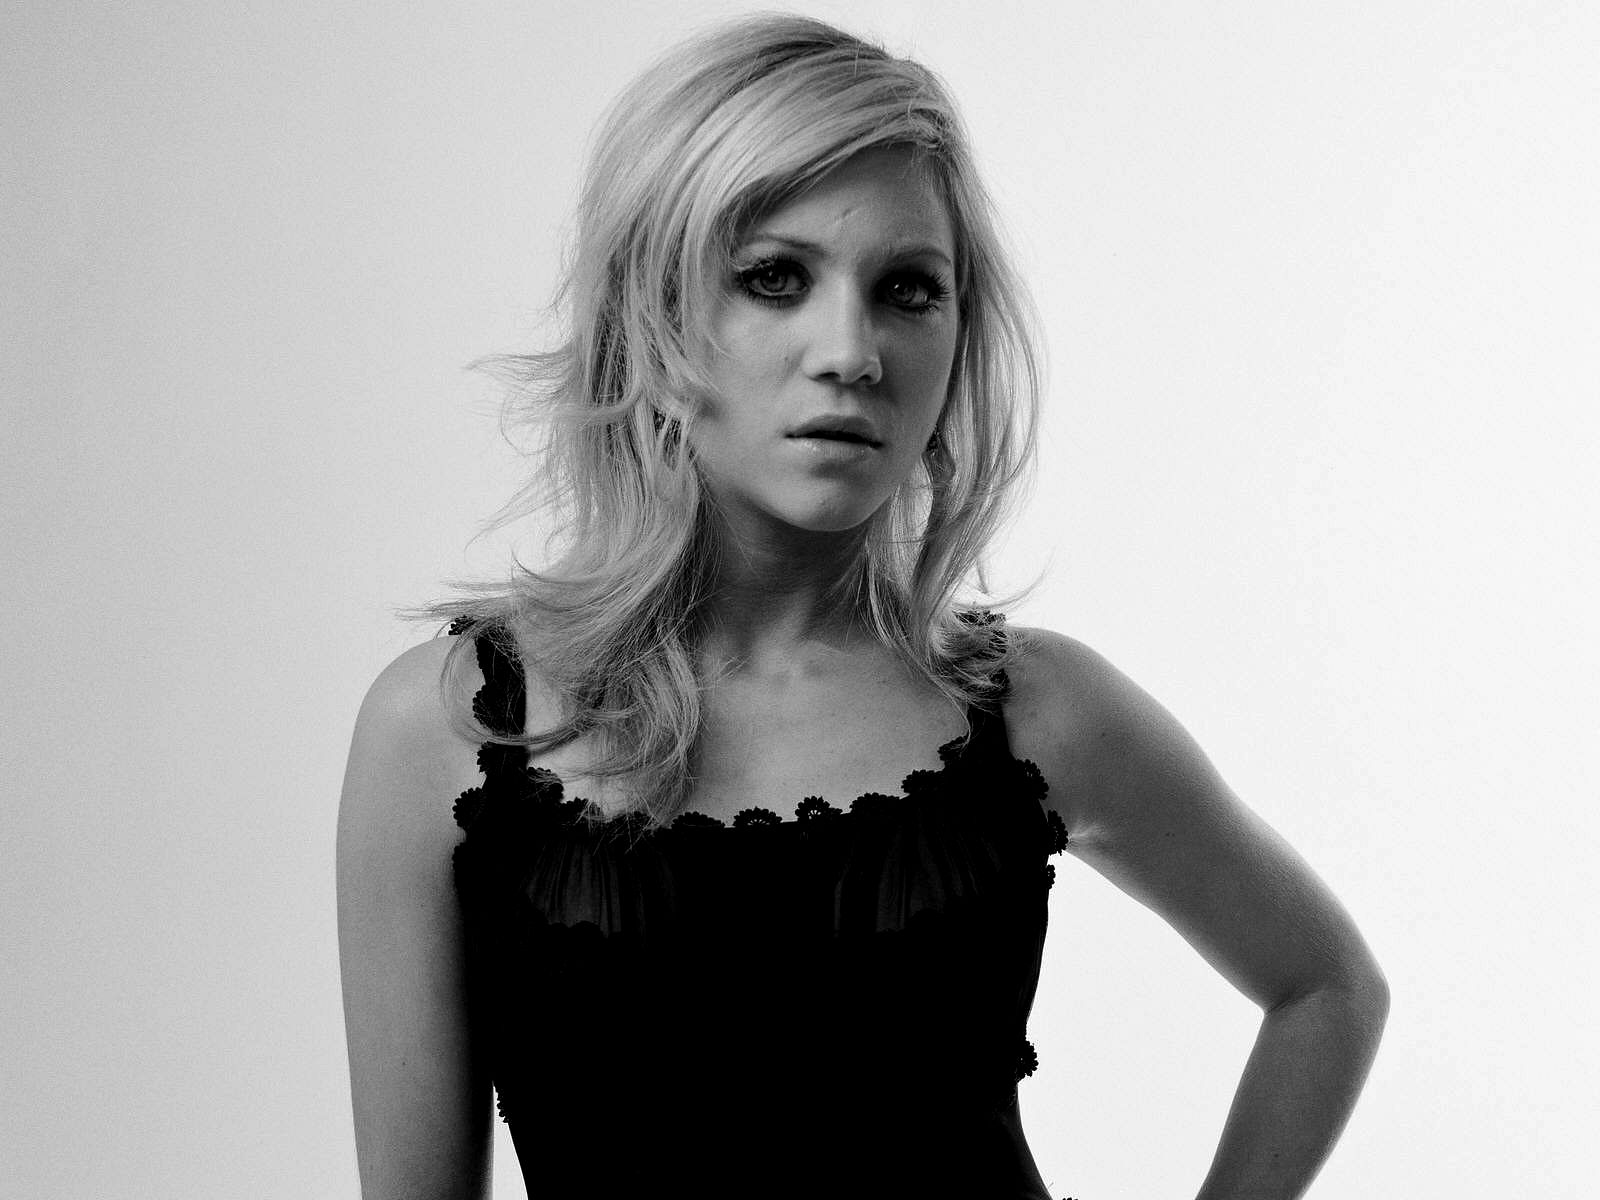 1600x1200 - Brittany Snow Wallpapers 11